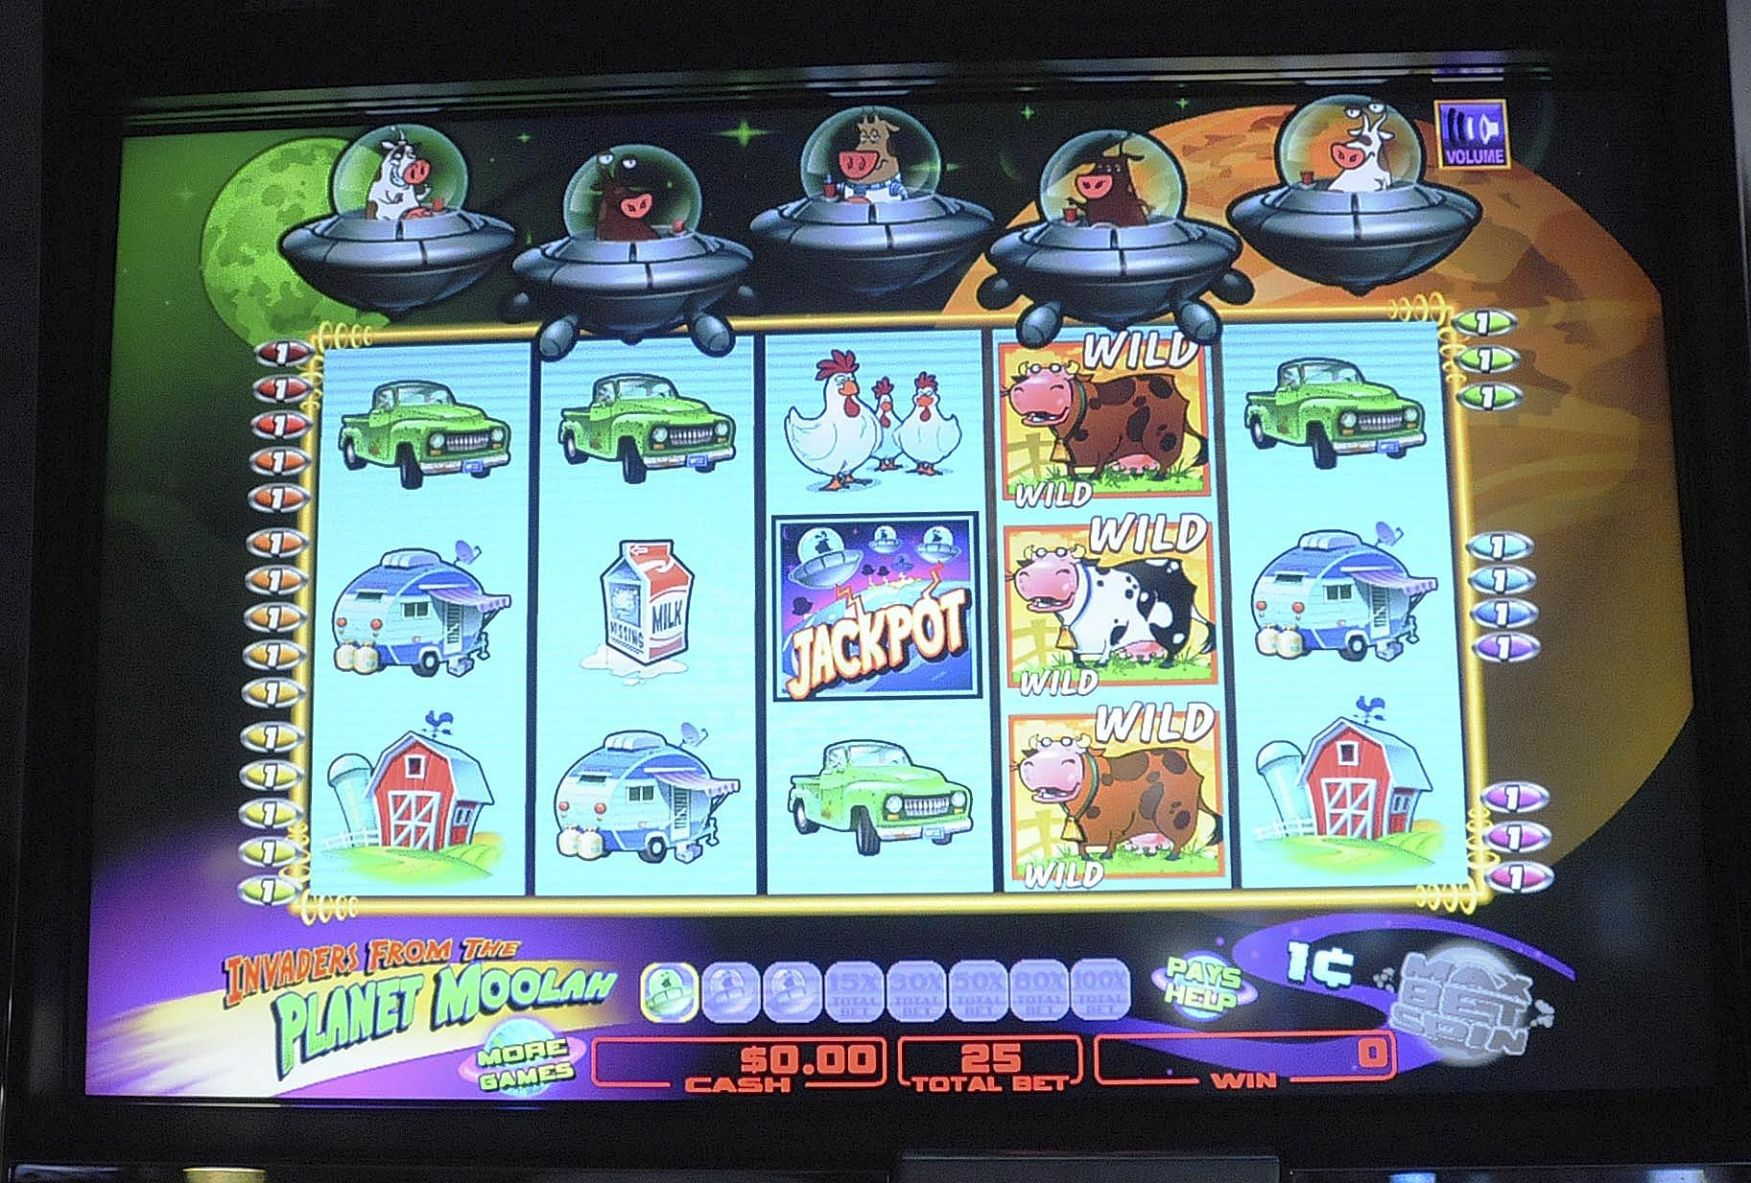 Gambling il roulette games free download pc